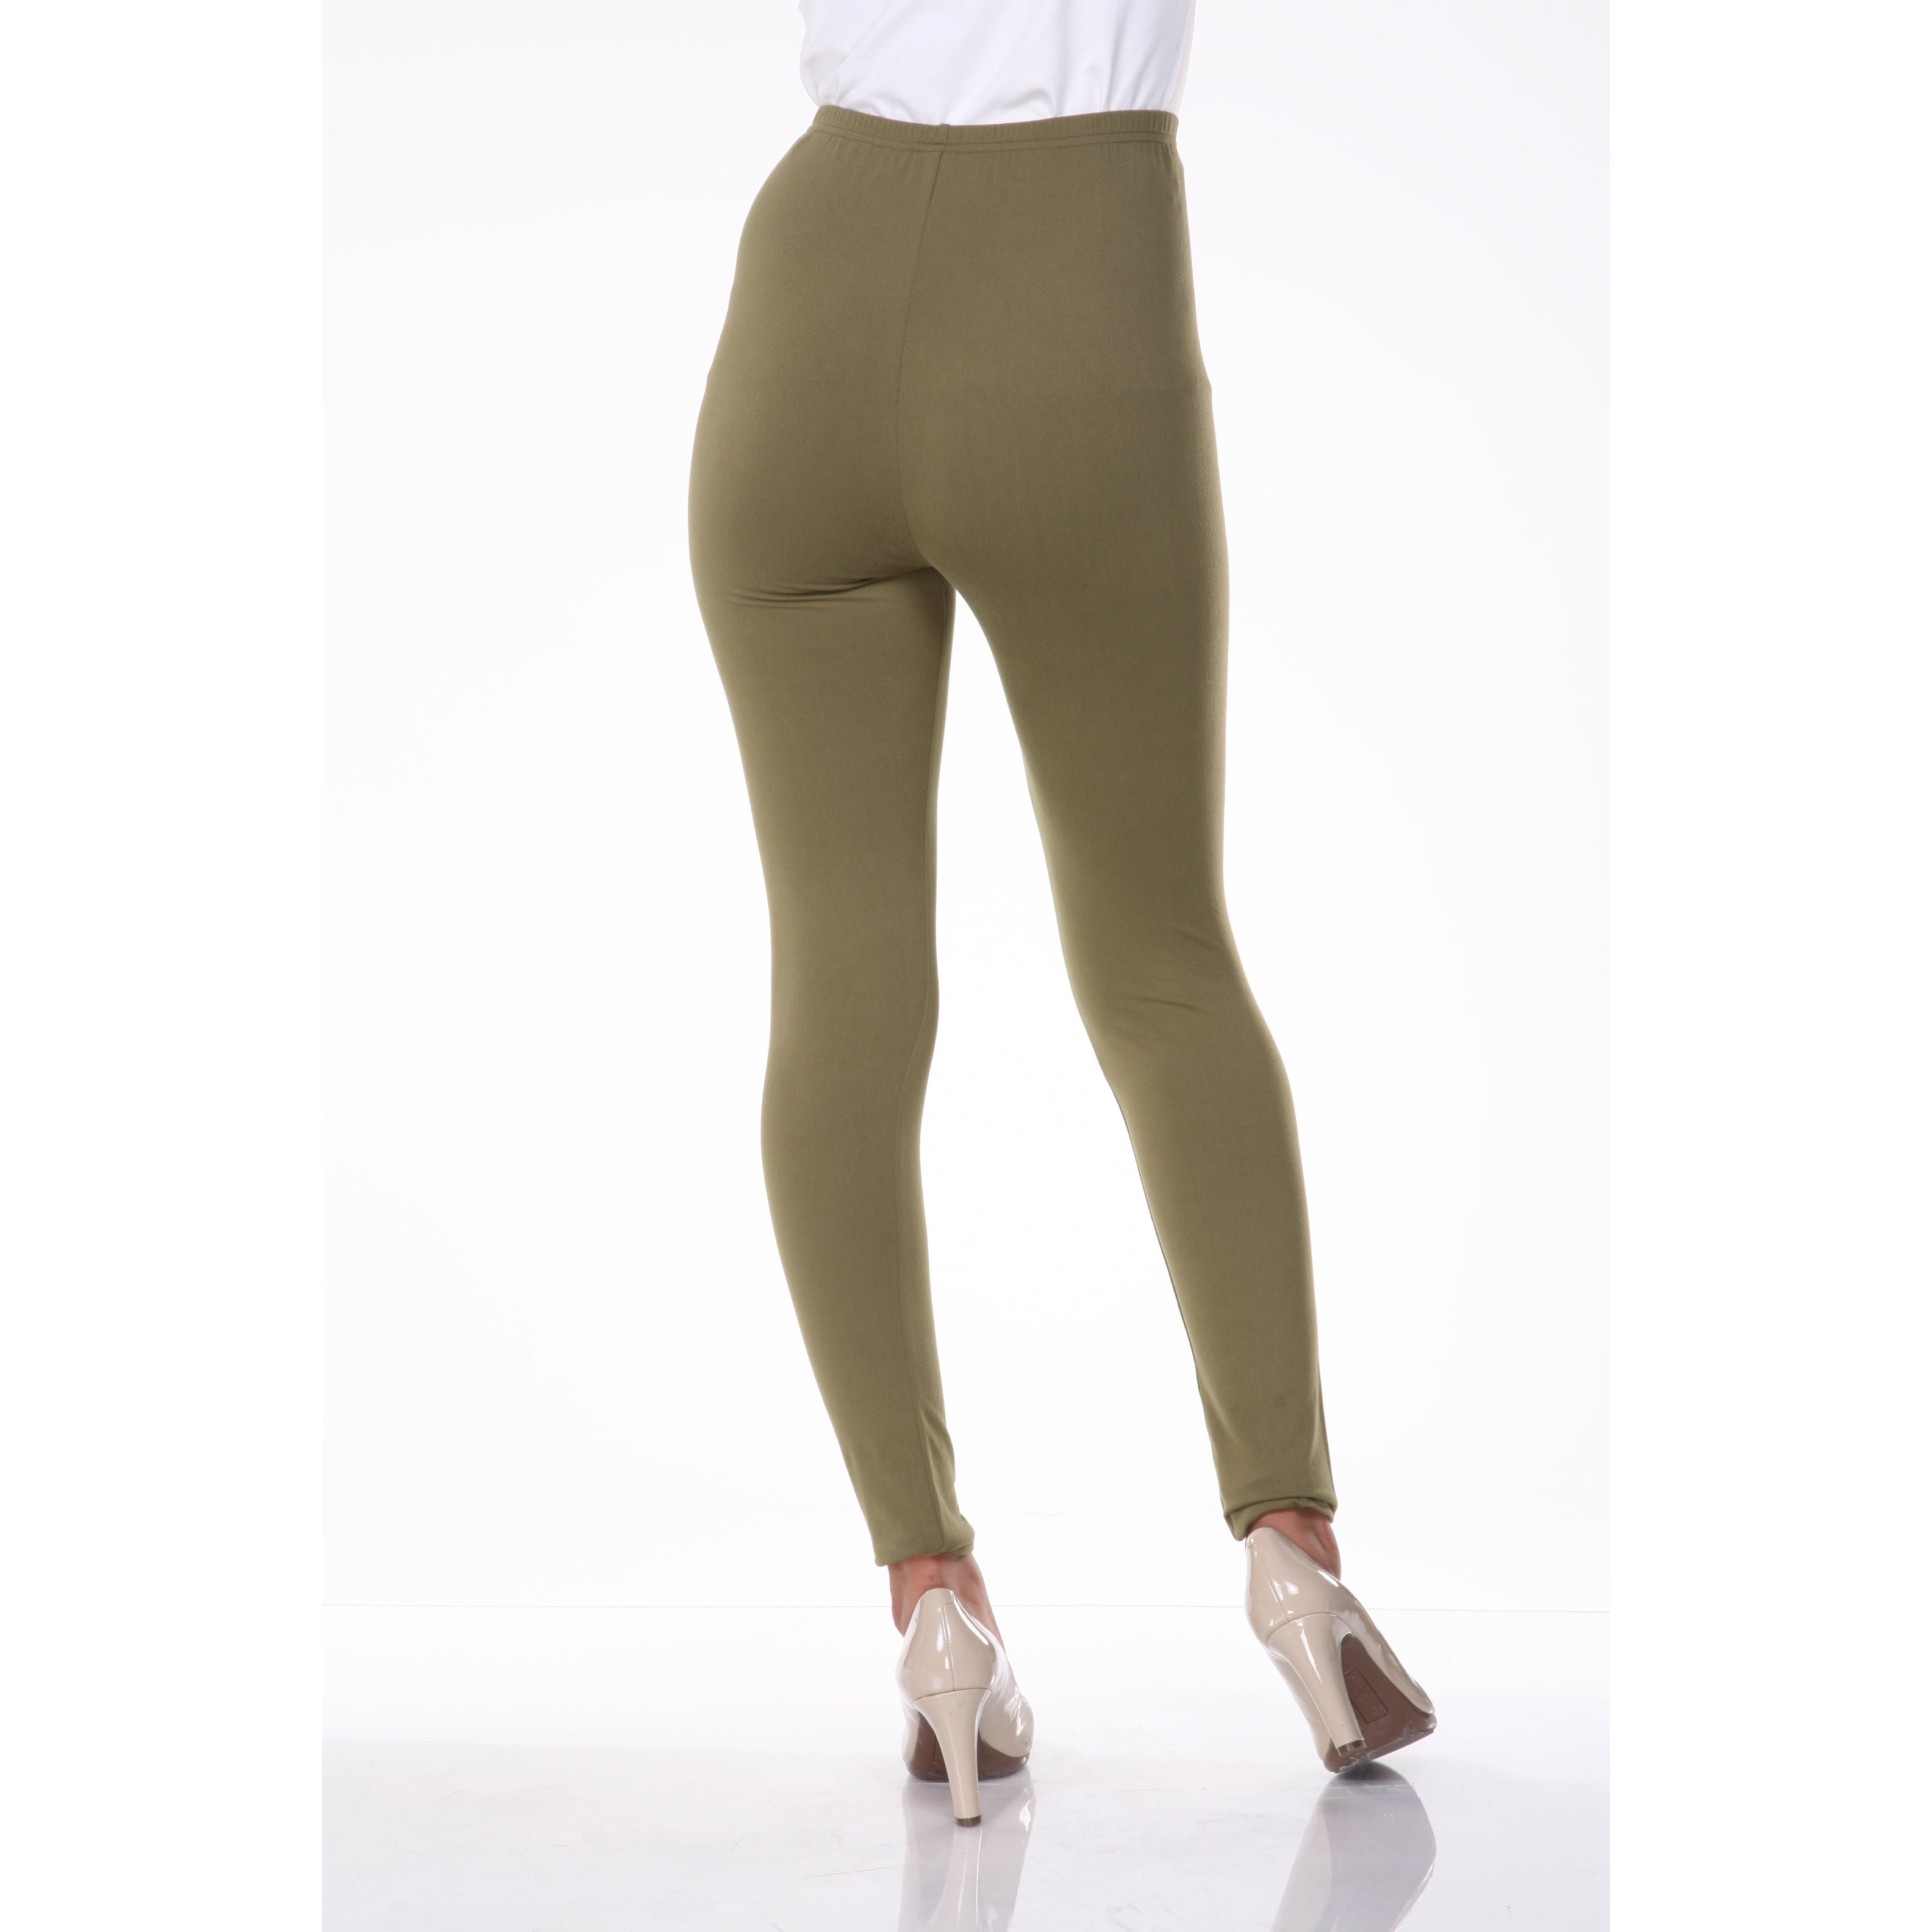 c1b2f9c8a7d9b Shop White Mark Women's Cotton Leggings - Free Shipping On Orders Over $45  - Overstock - 9613469